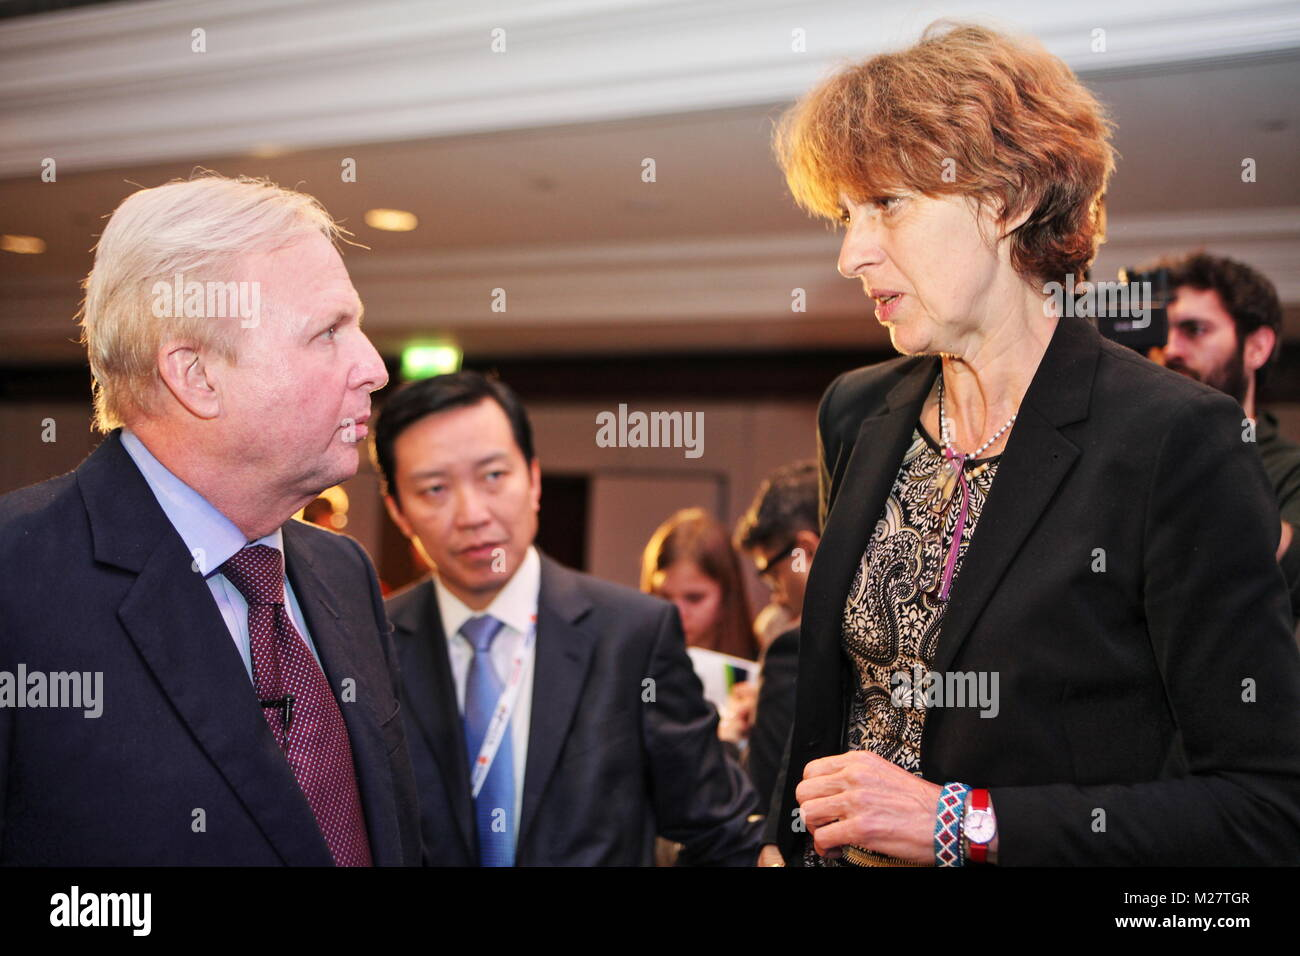 BP CEO Bob Dudley speaks to Prof Jacqueline McGlade at IP Week 2016 Conference in London - Stock Image